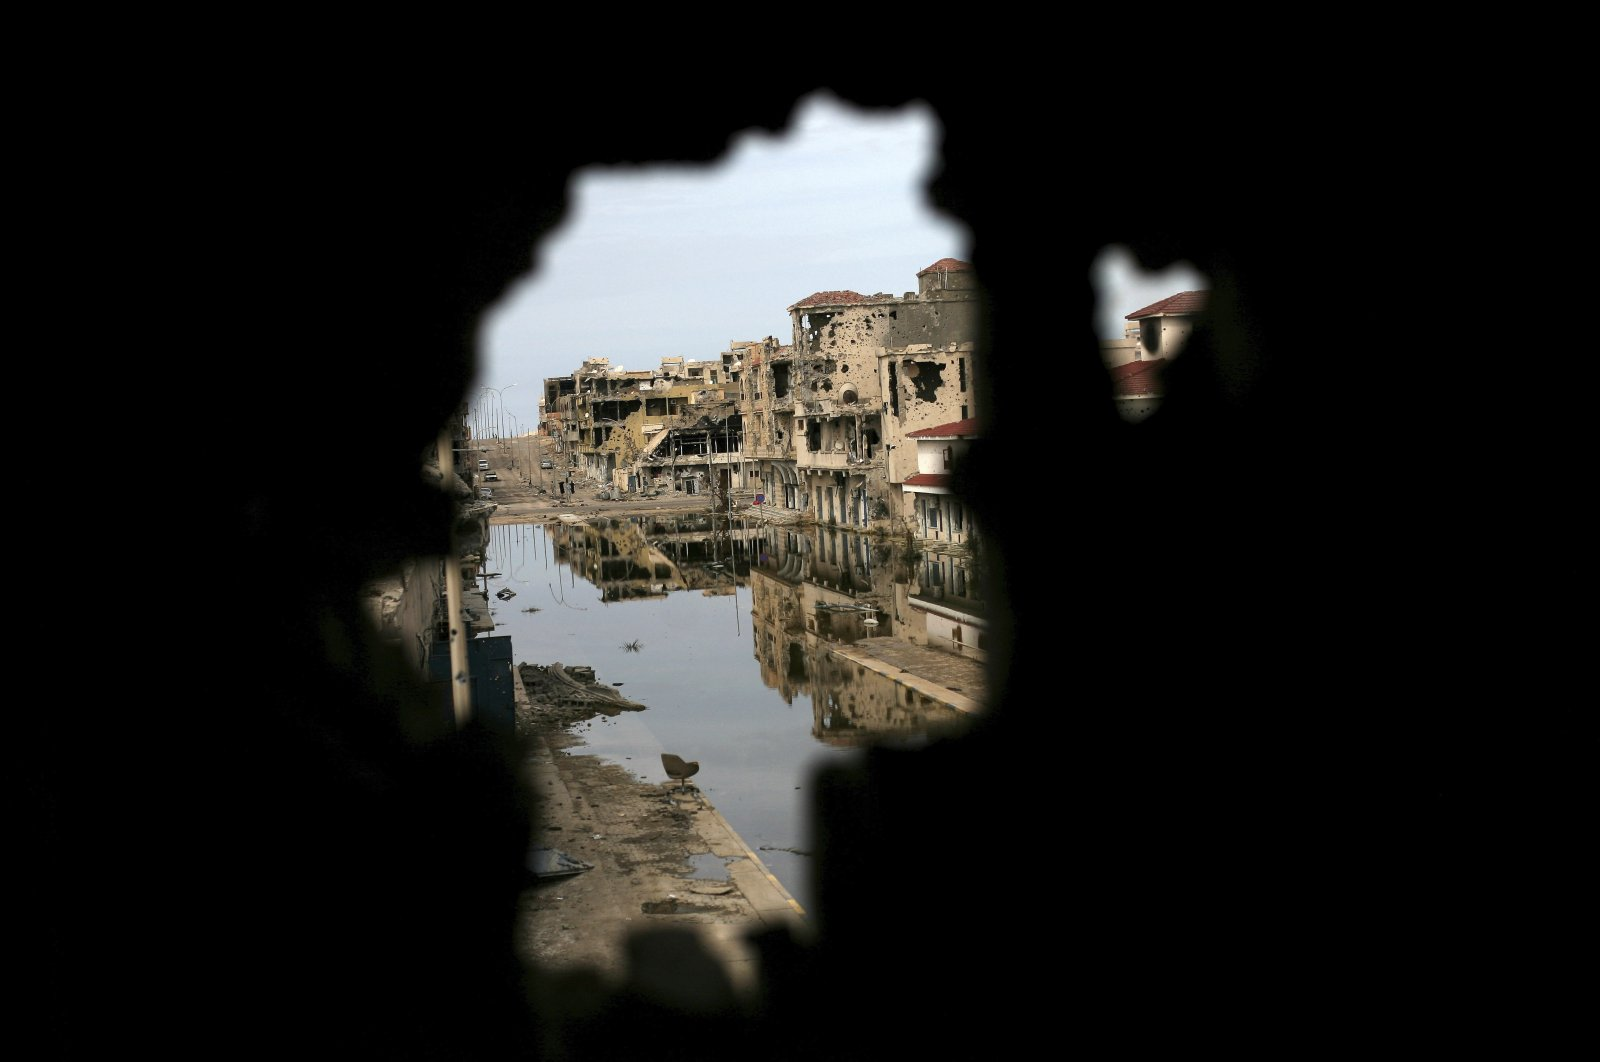 Buildings ravaged by fighting are seen through another damaged building in Sirte, Libya, Oct. 22, 2011. (AP Photo)